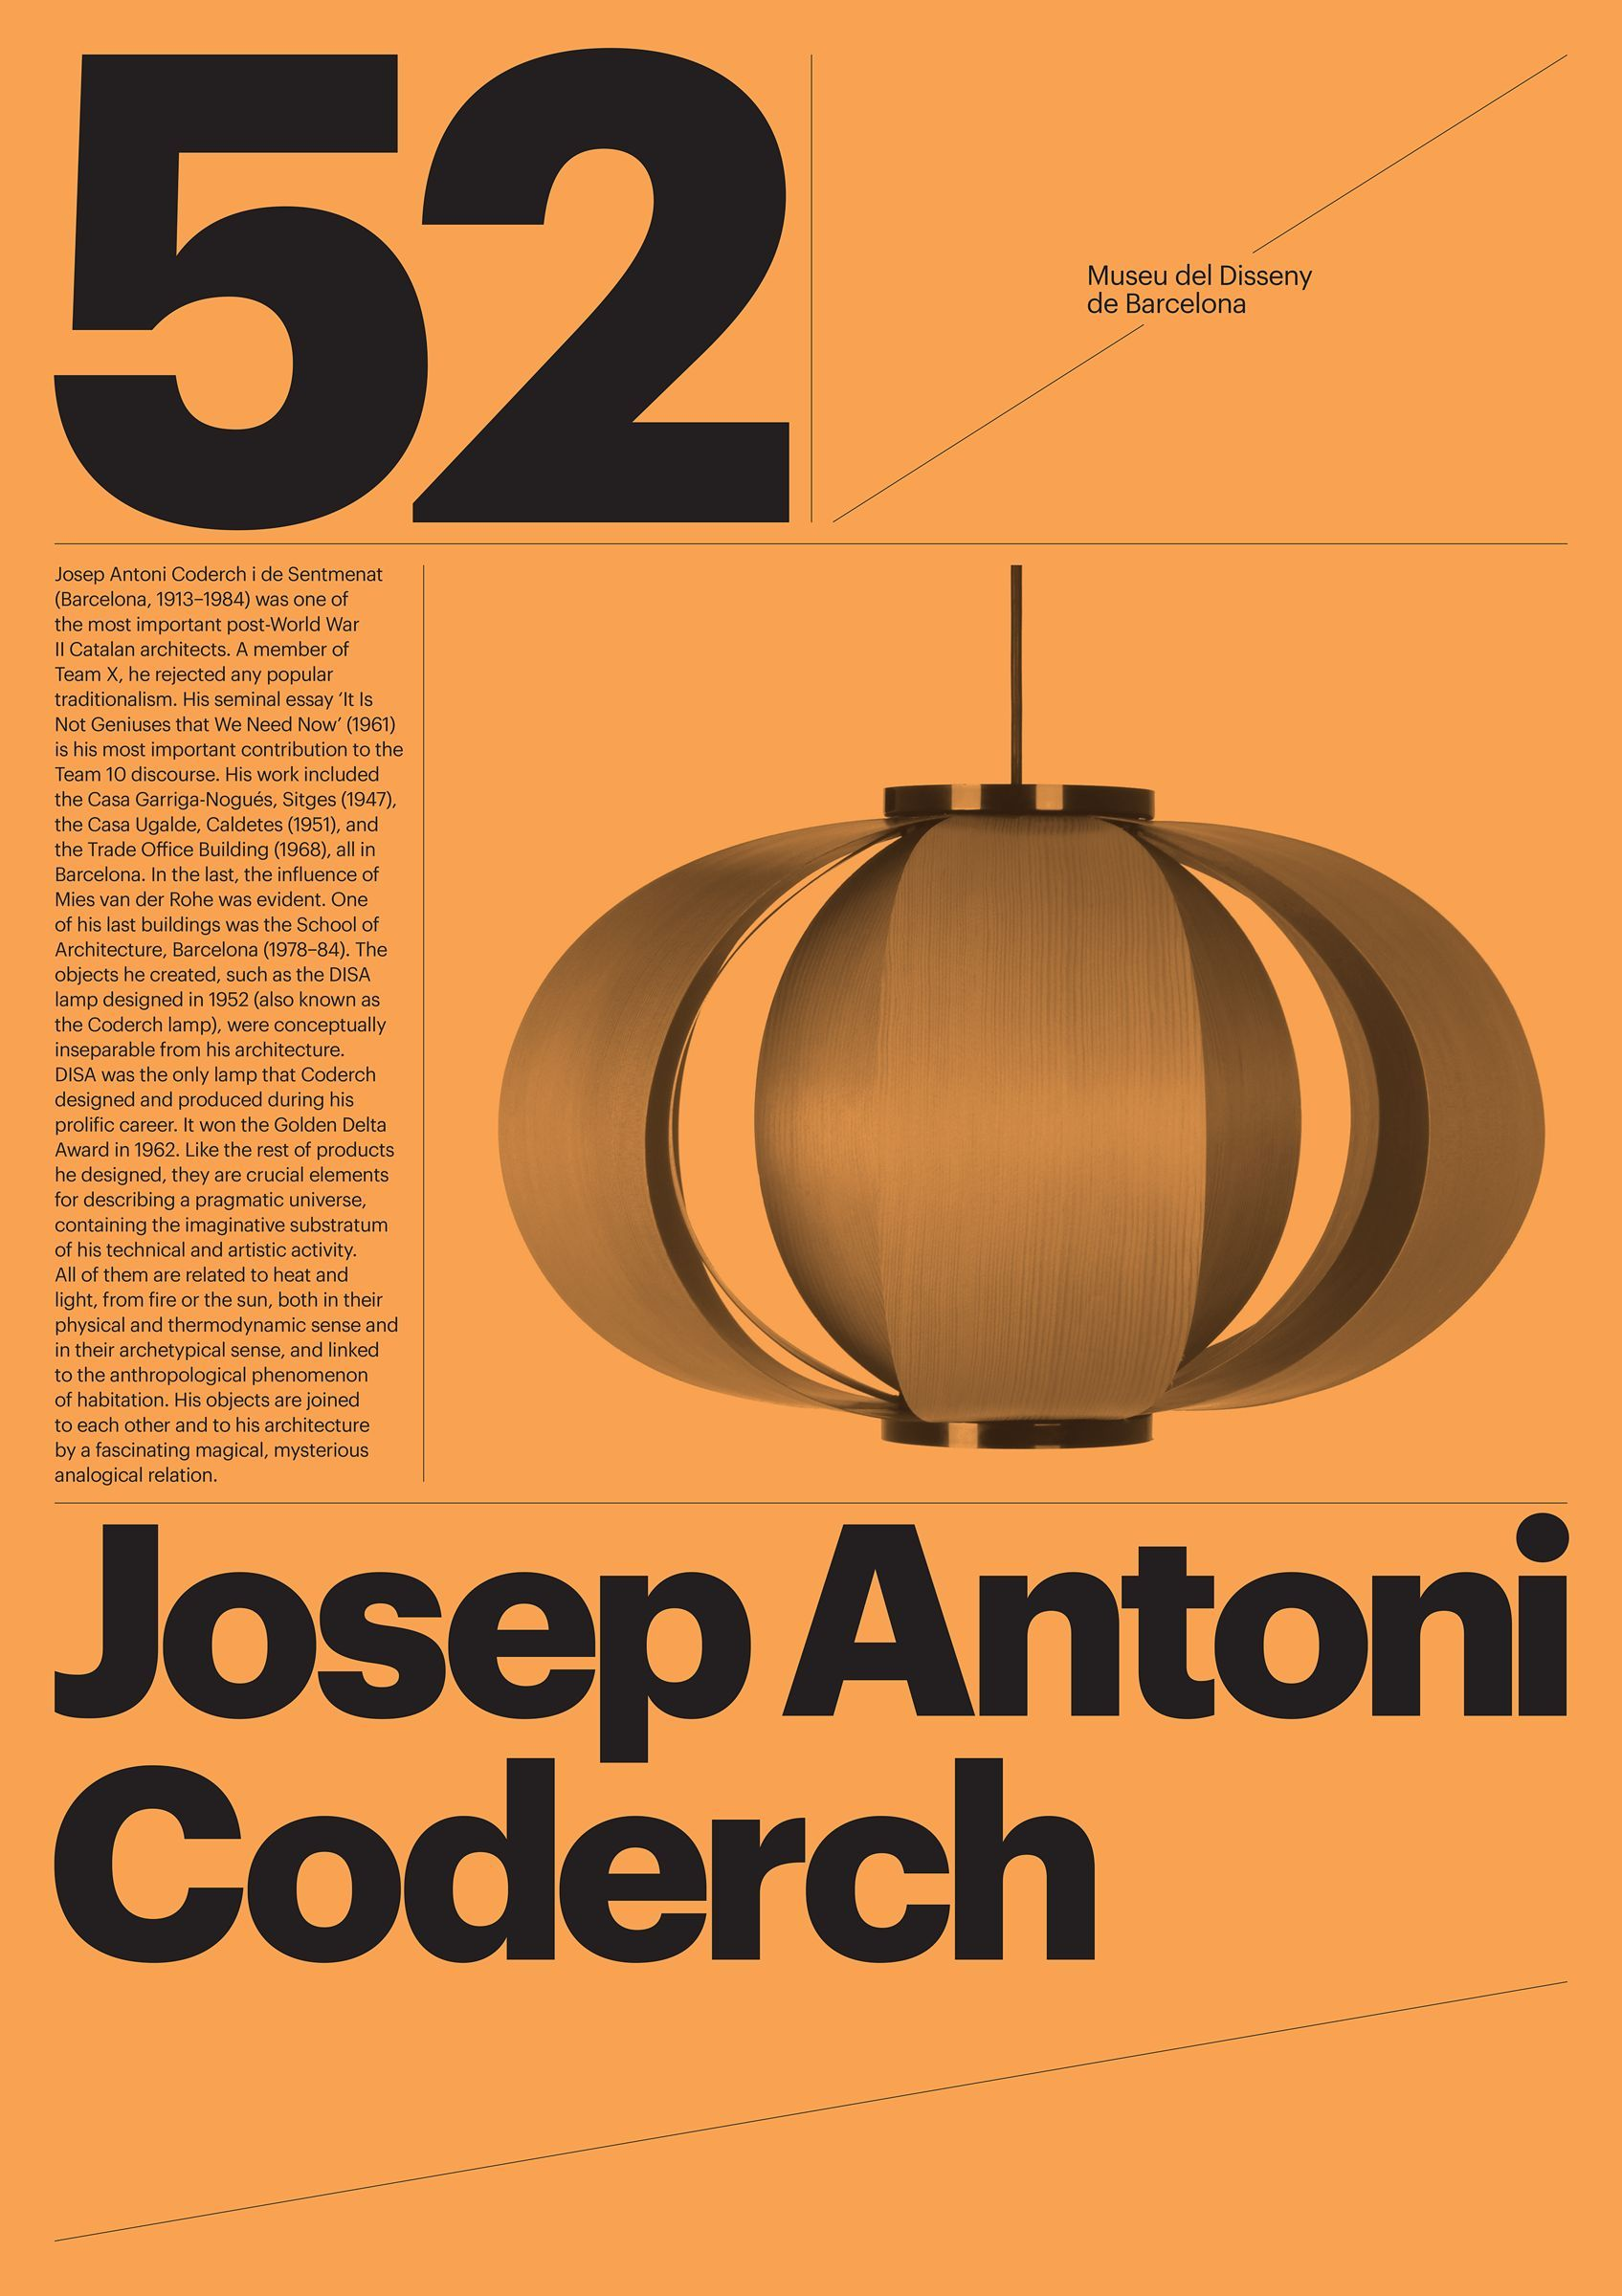 Poster design pinterest - Barcelona Design Museum Modern Typography And Graphic Design Layout Advertising Posters Award Winning